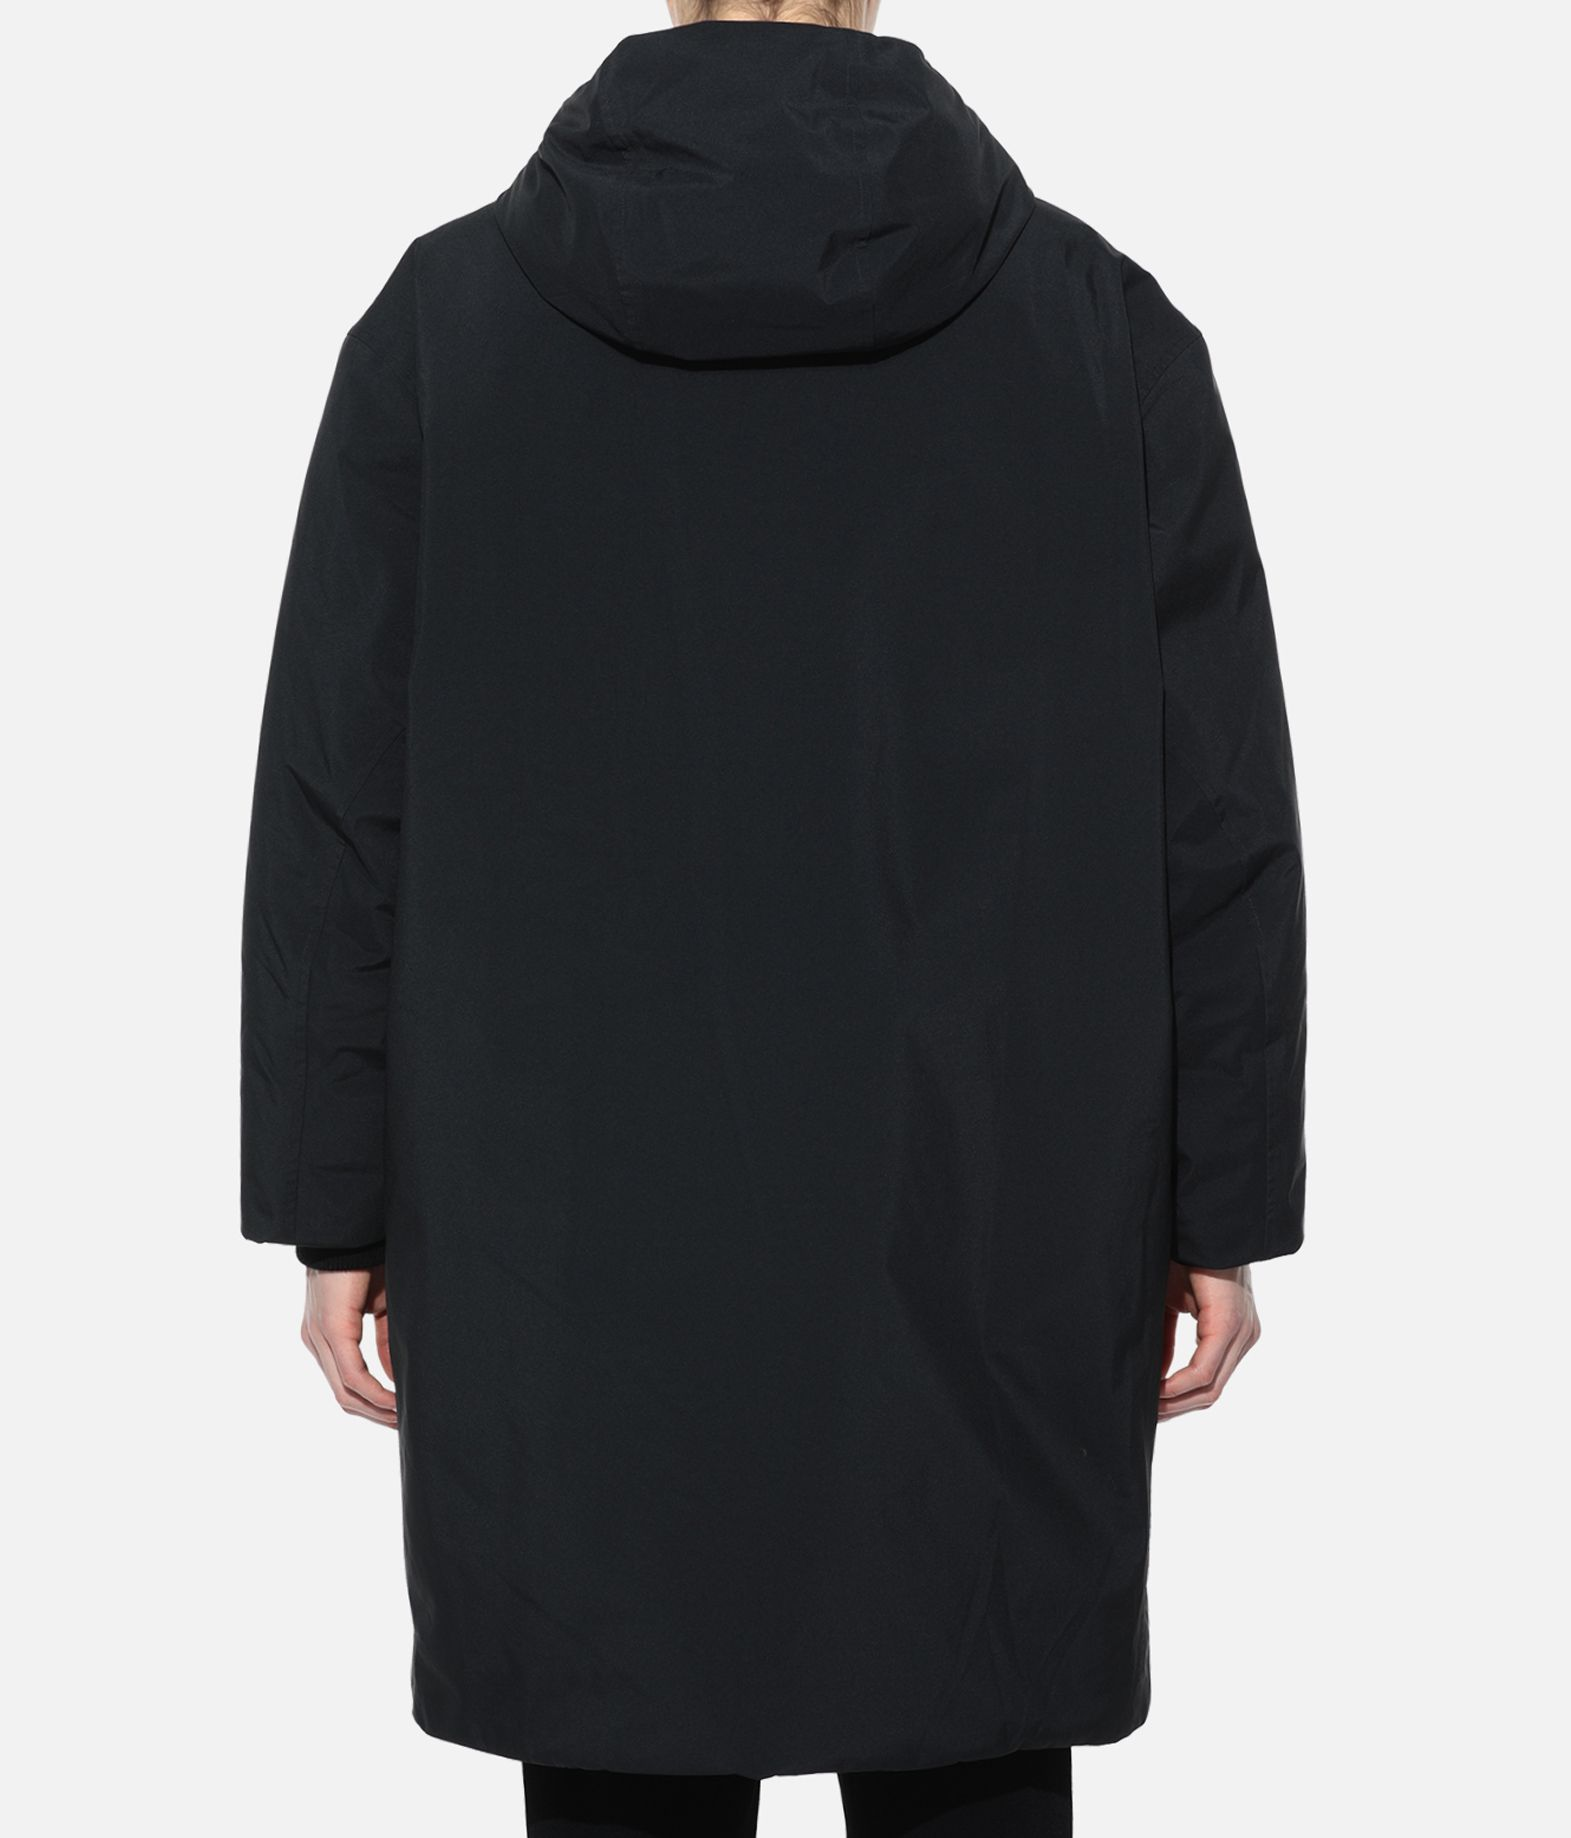 Y-3 Y-3 GORE-TEX Down Parka Jacket Woman d